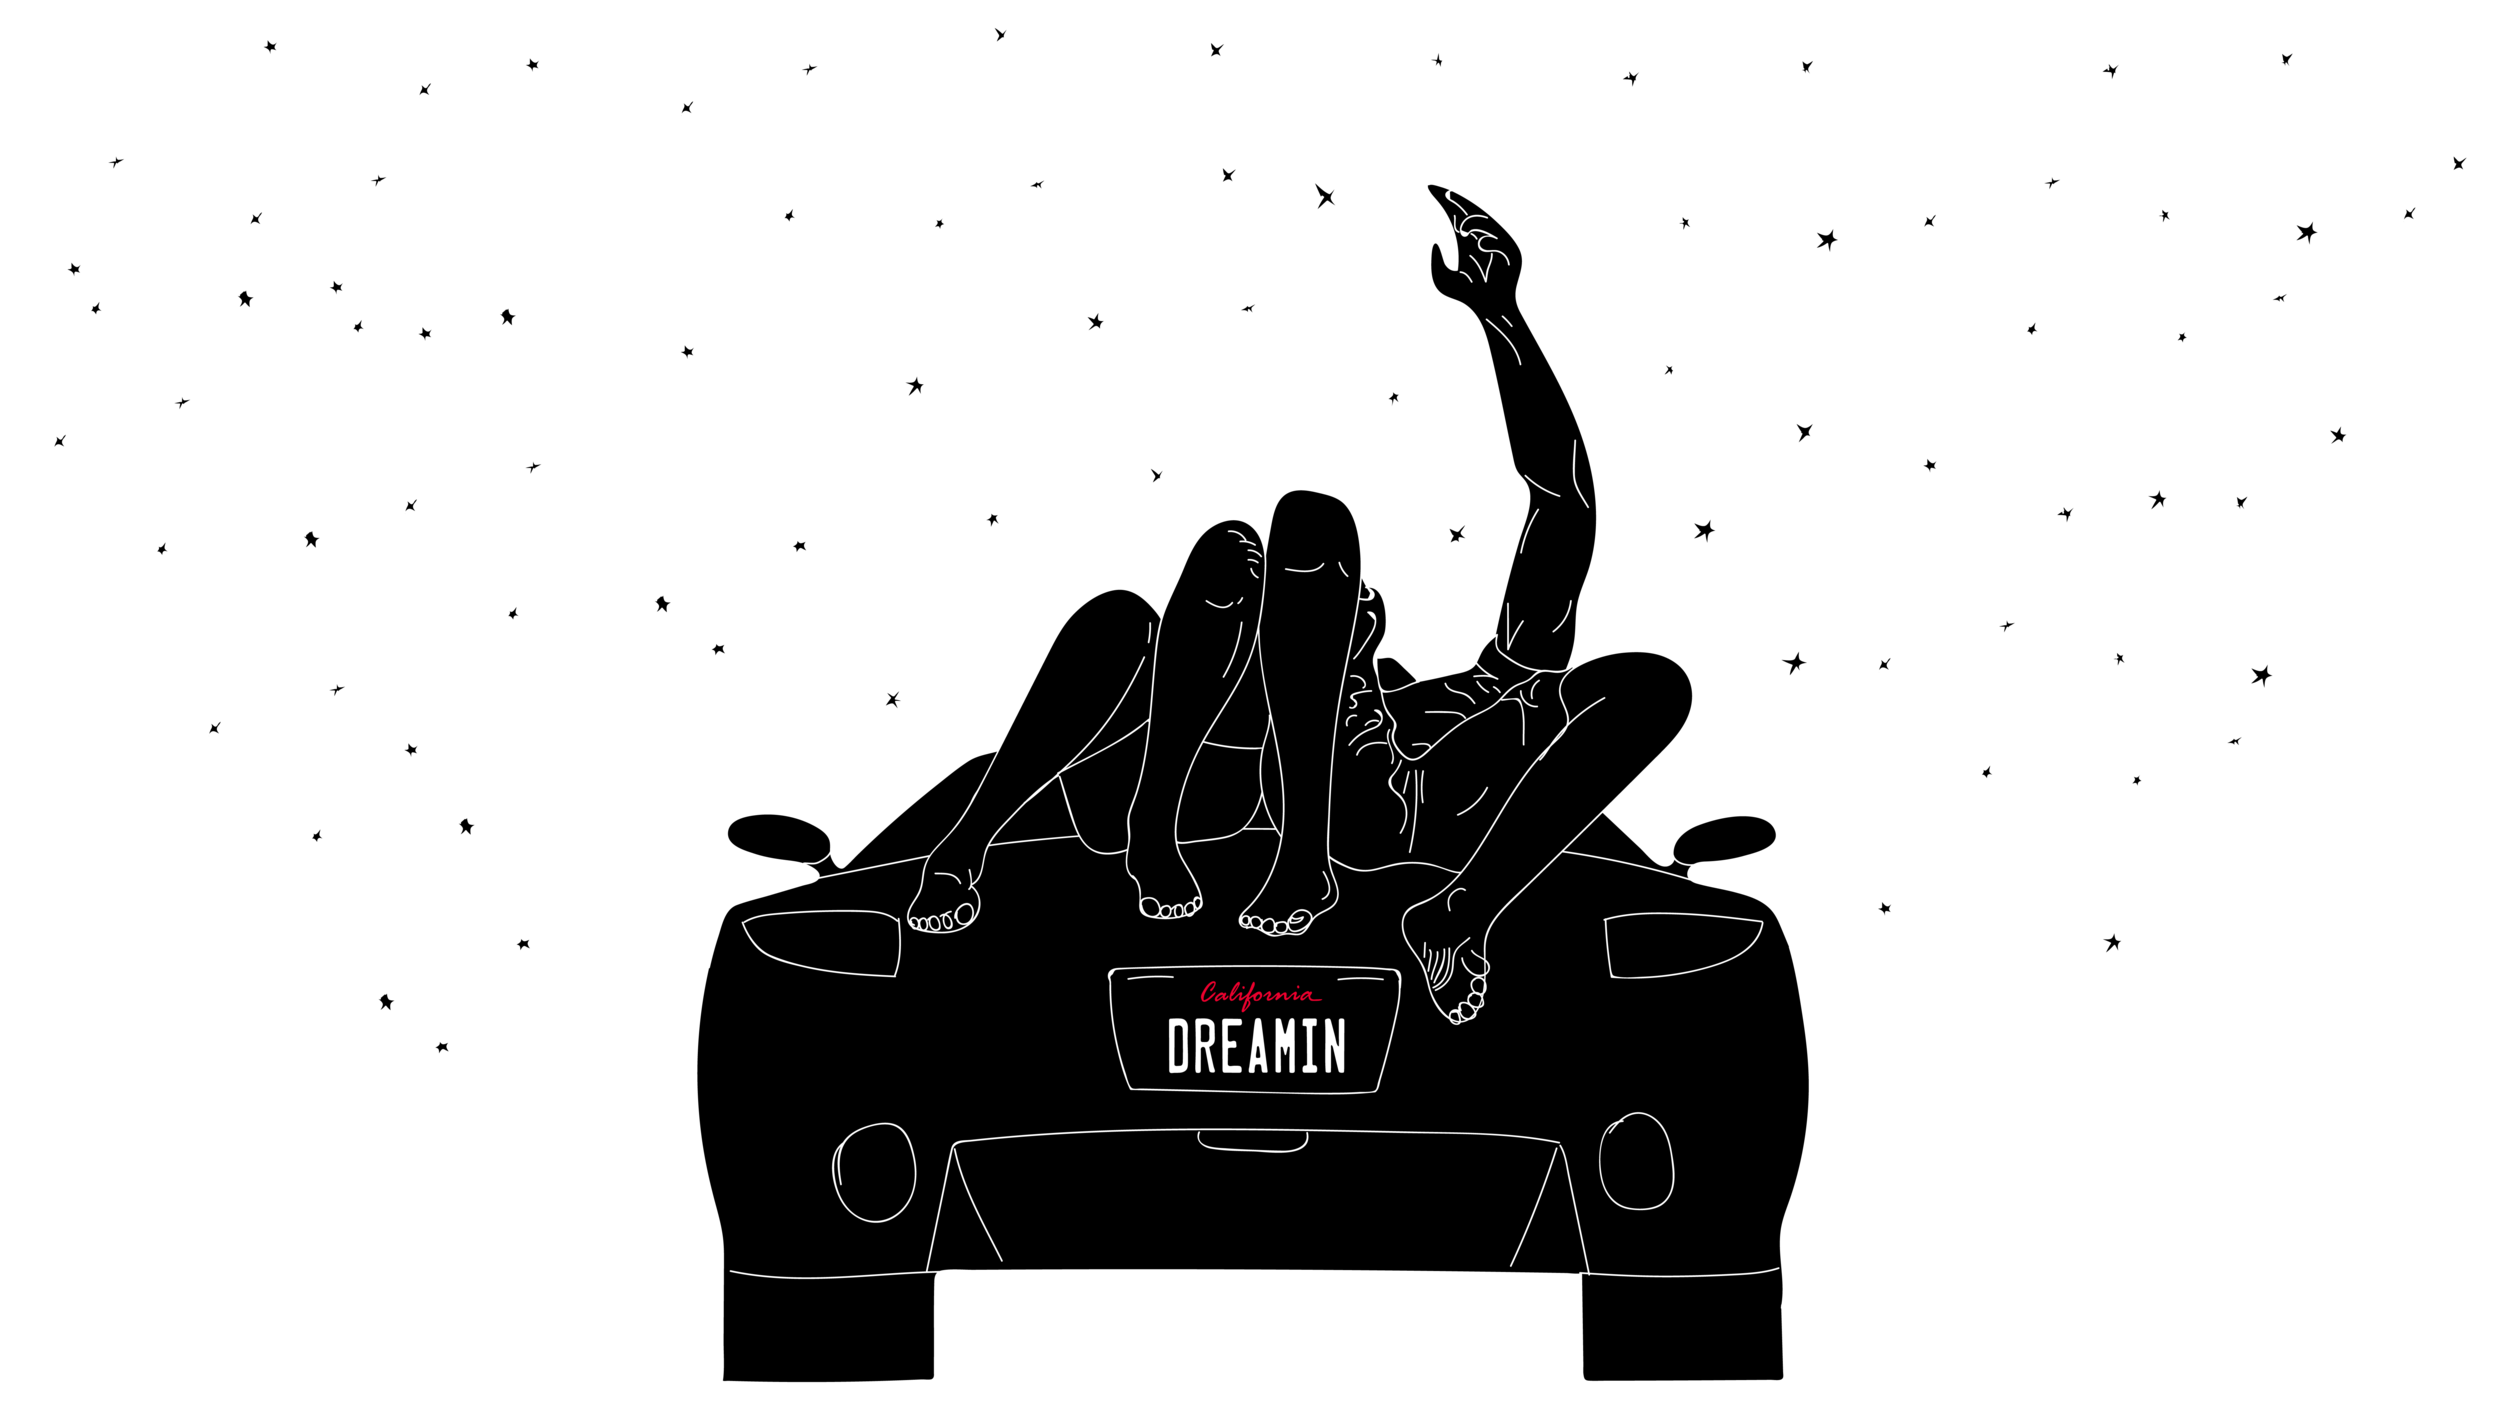 cali dreamin white outline-01.png